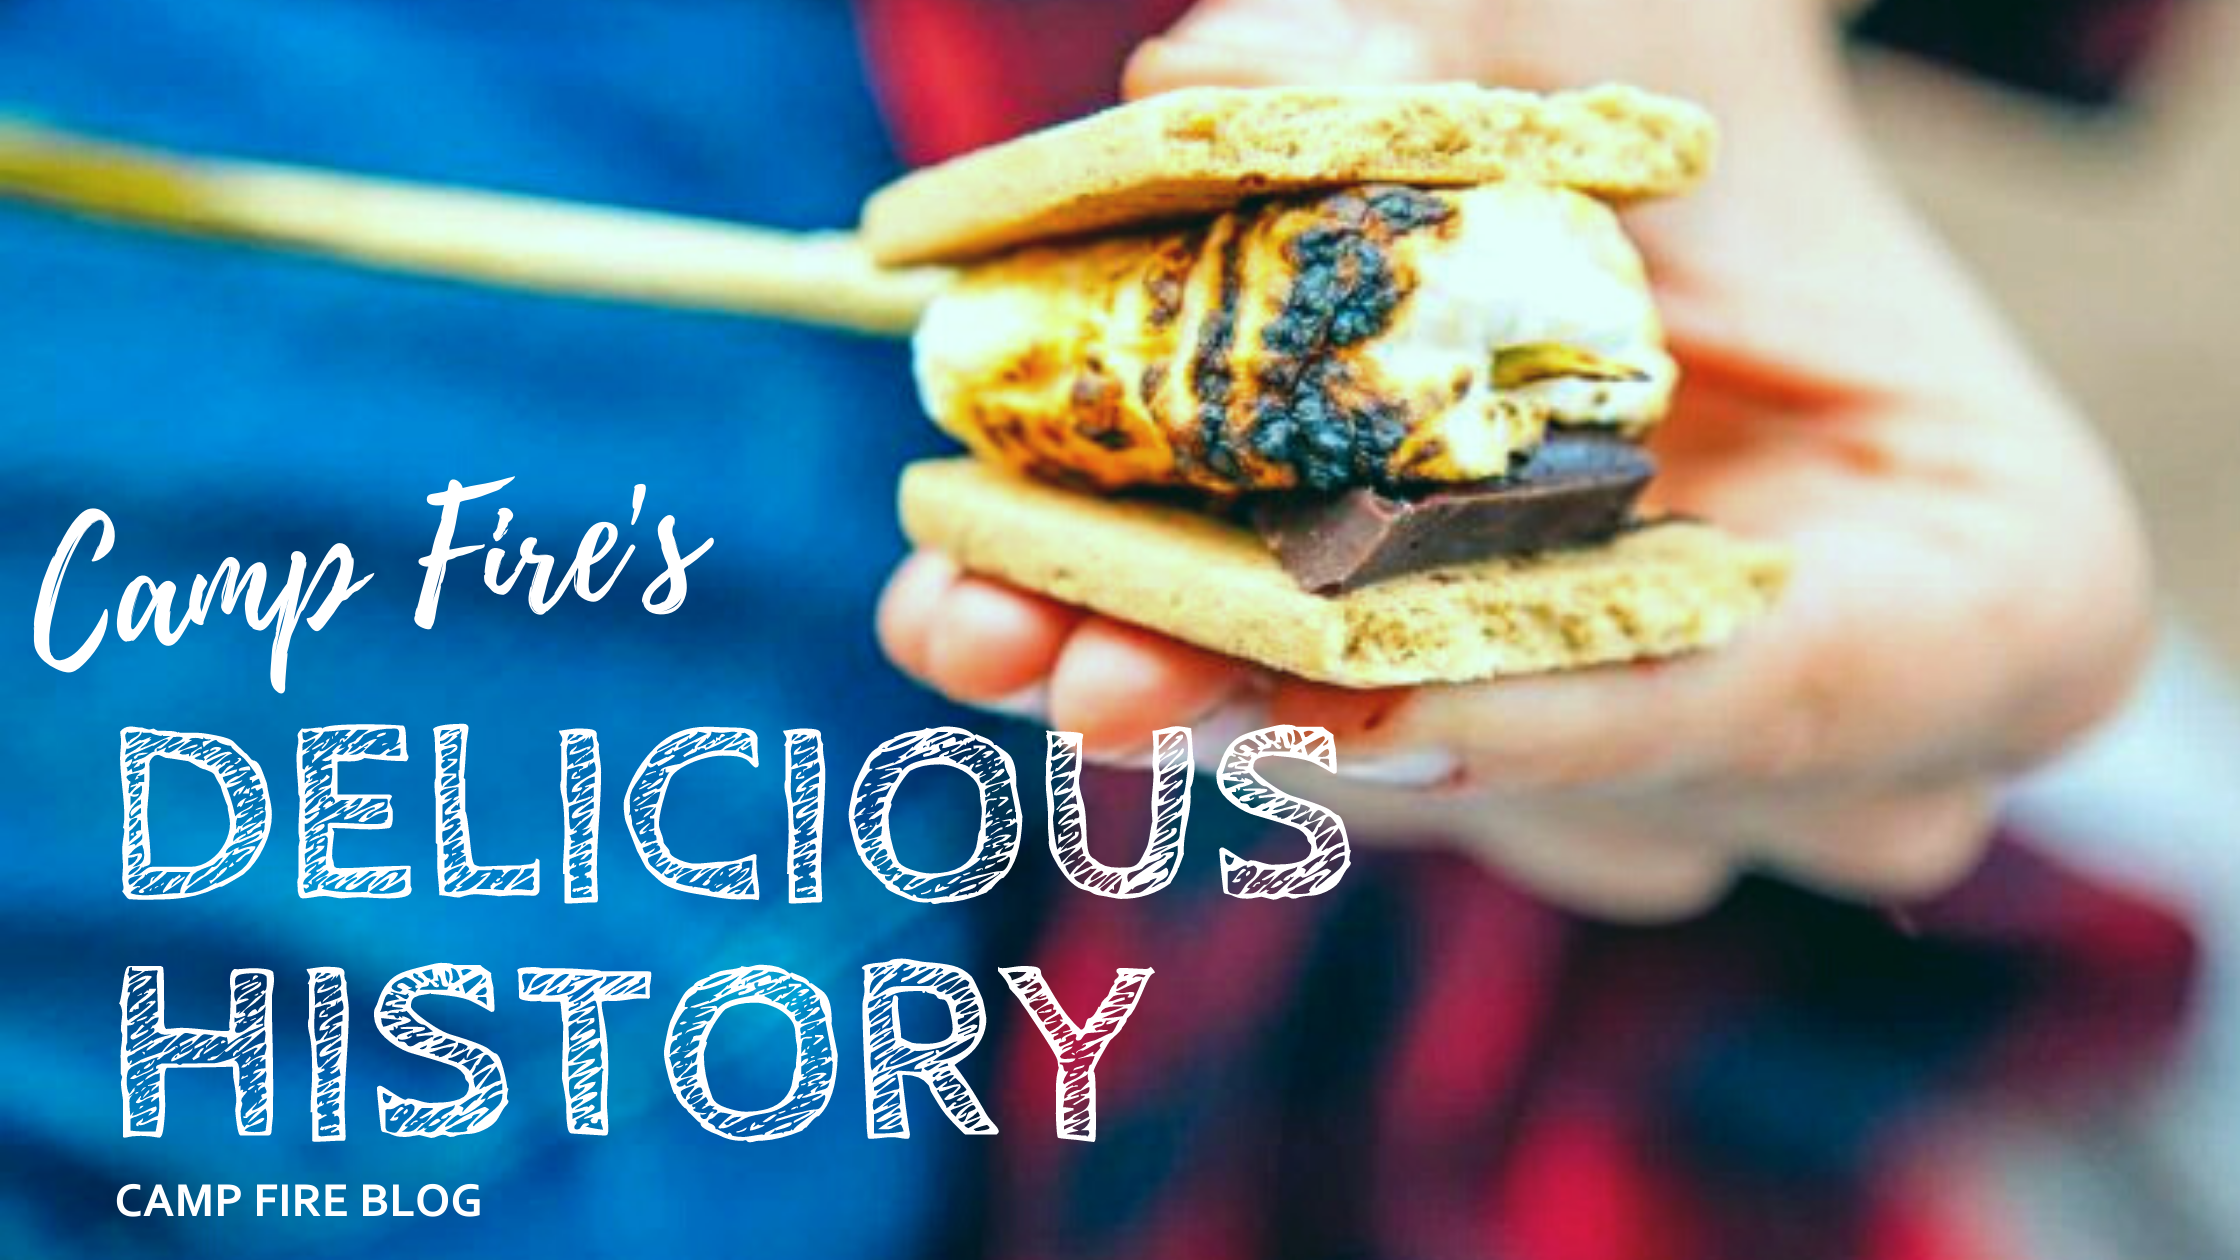 Camp Fire's Delicious History image of roasted marshmallow on stick between graham crackers